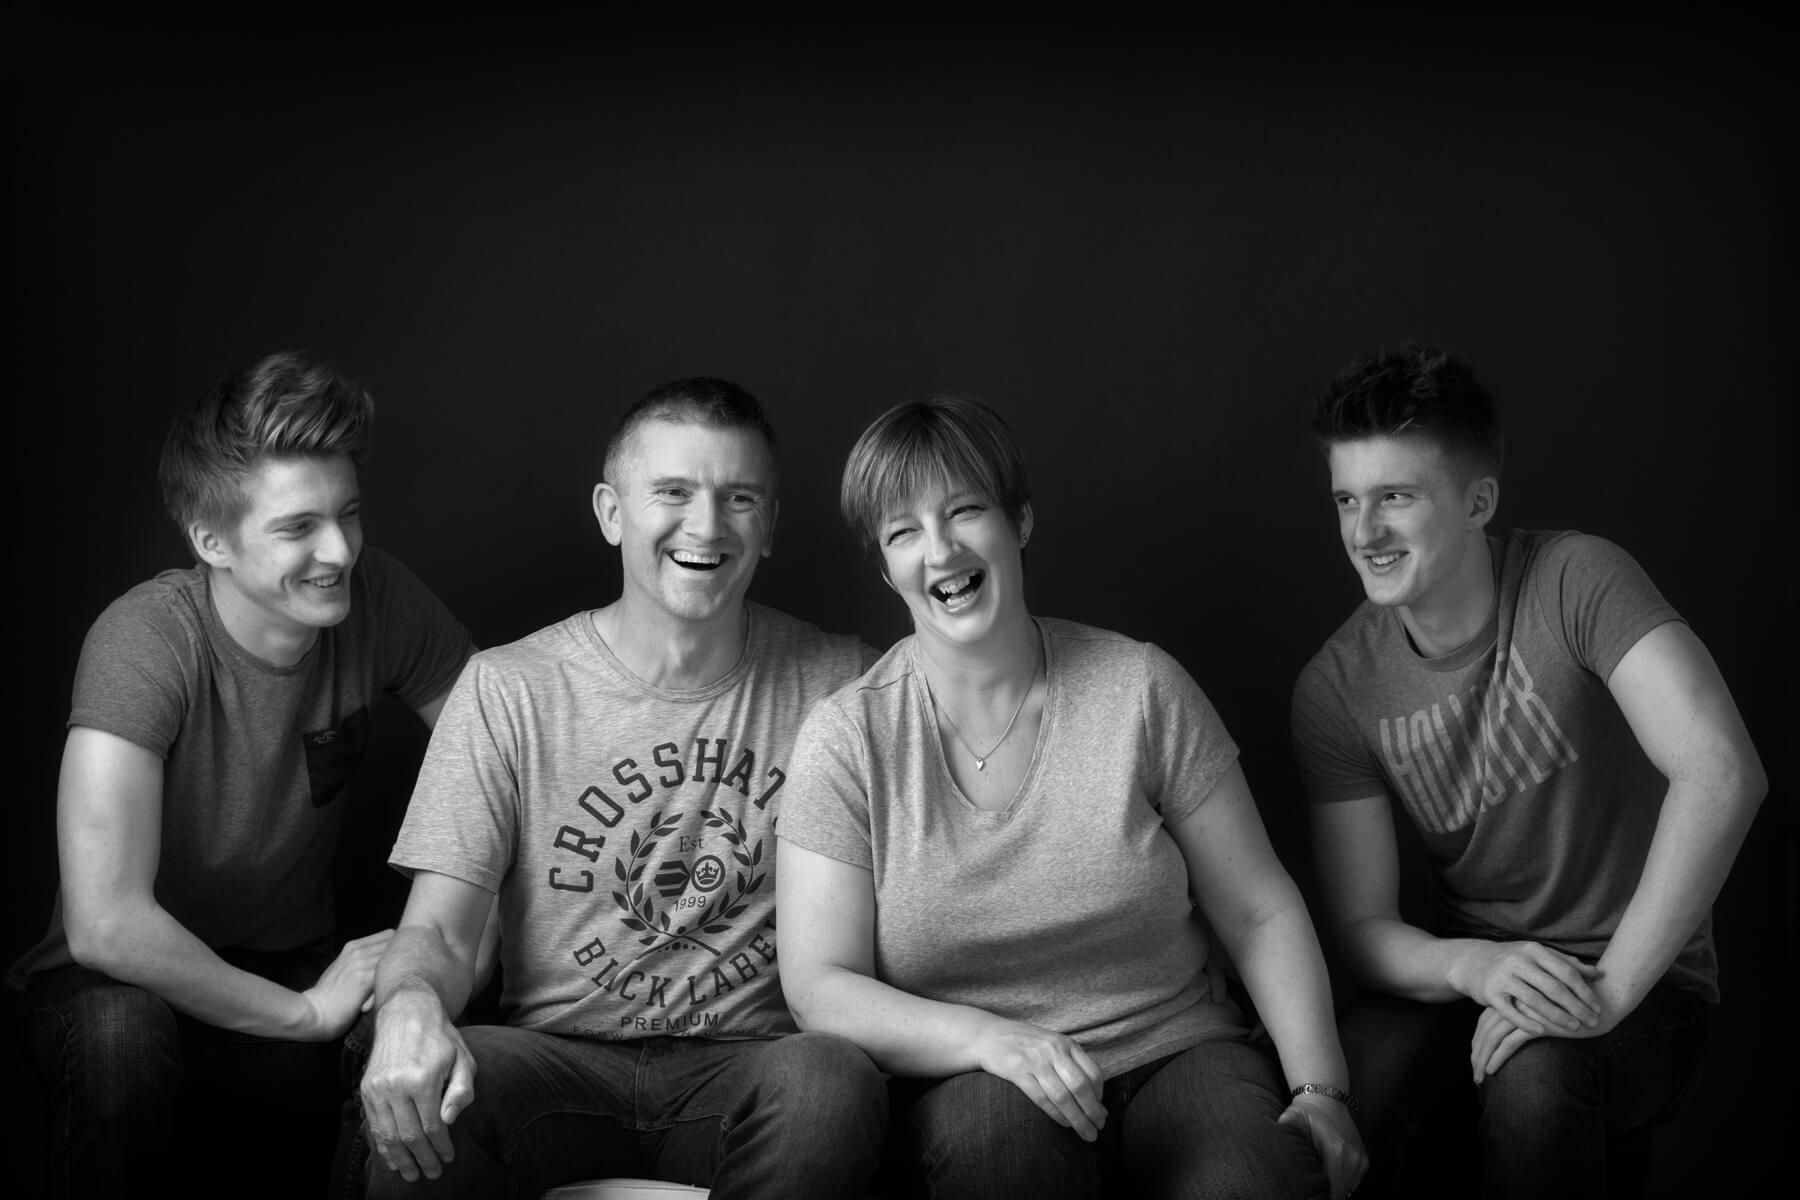 Edinburgh family photography